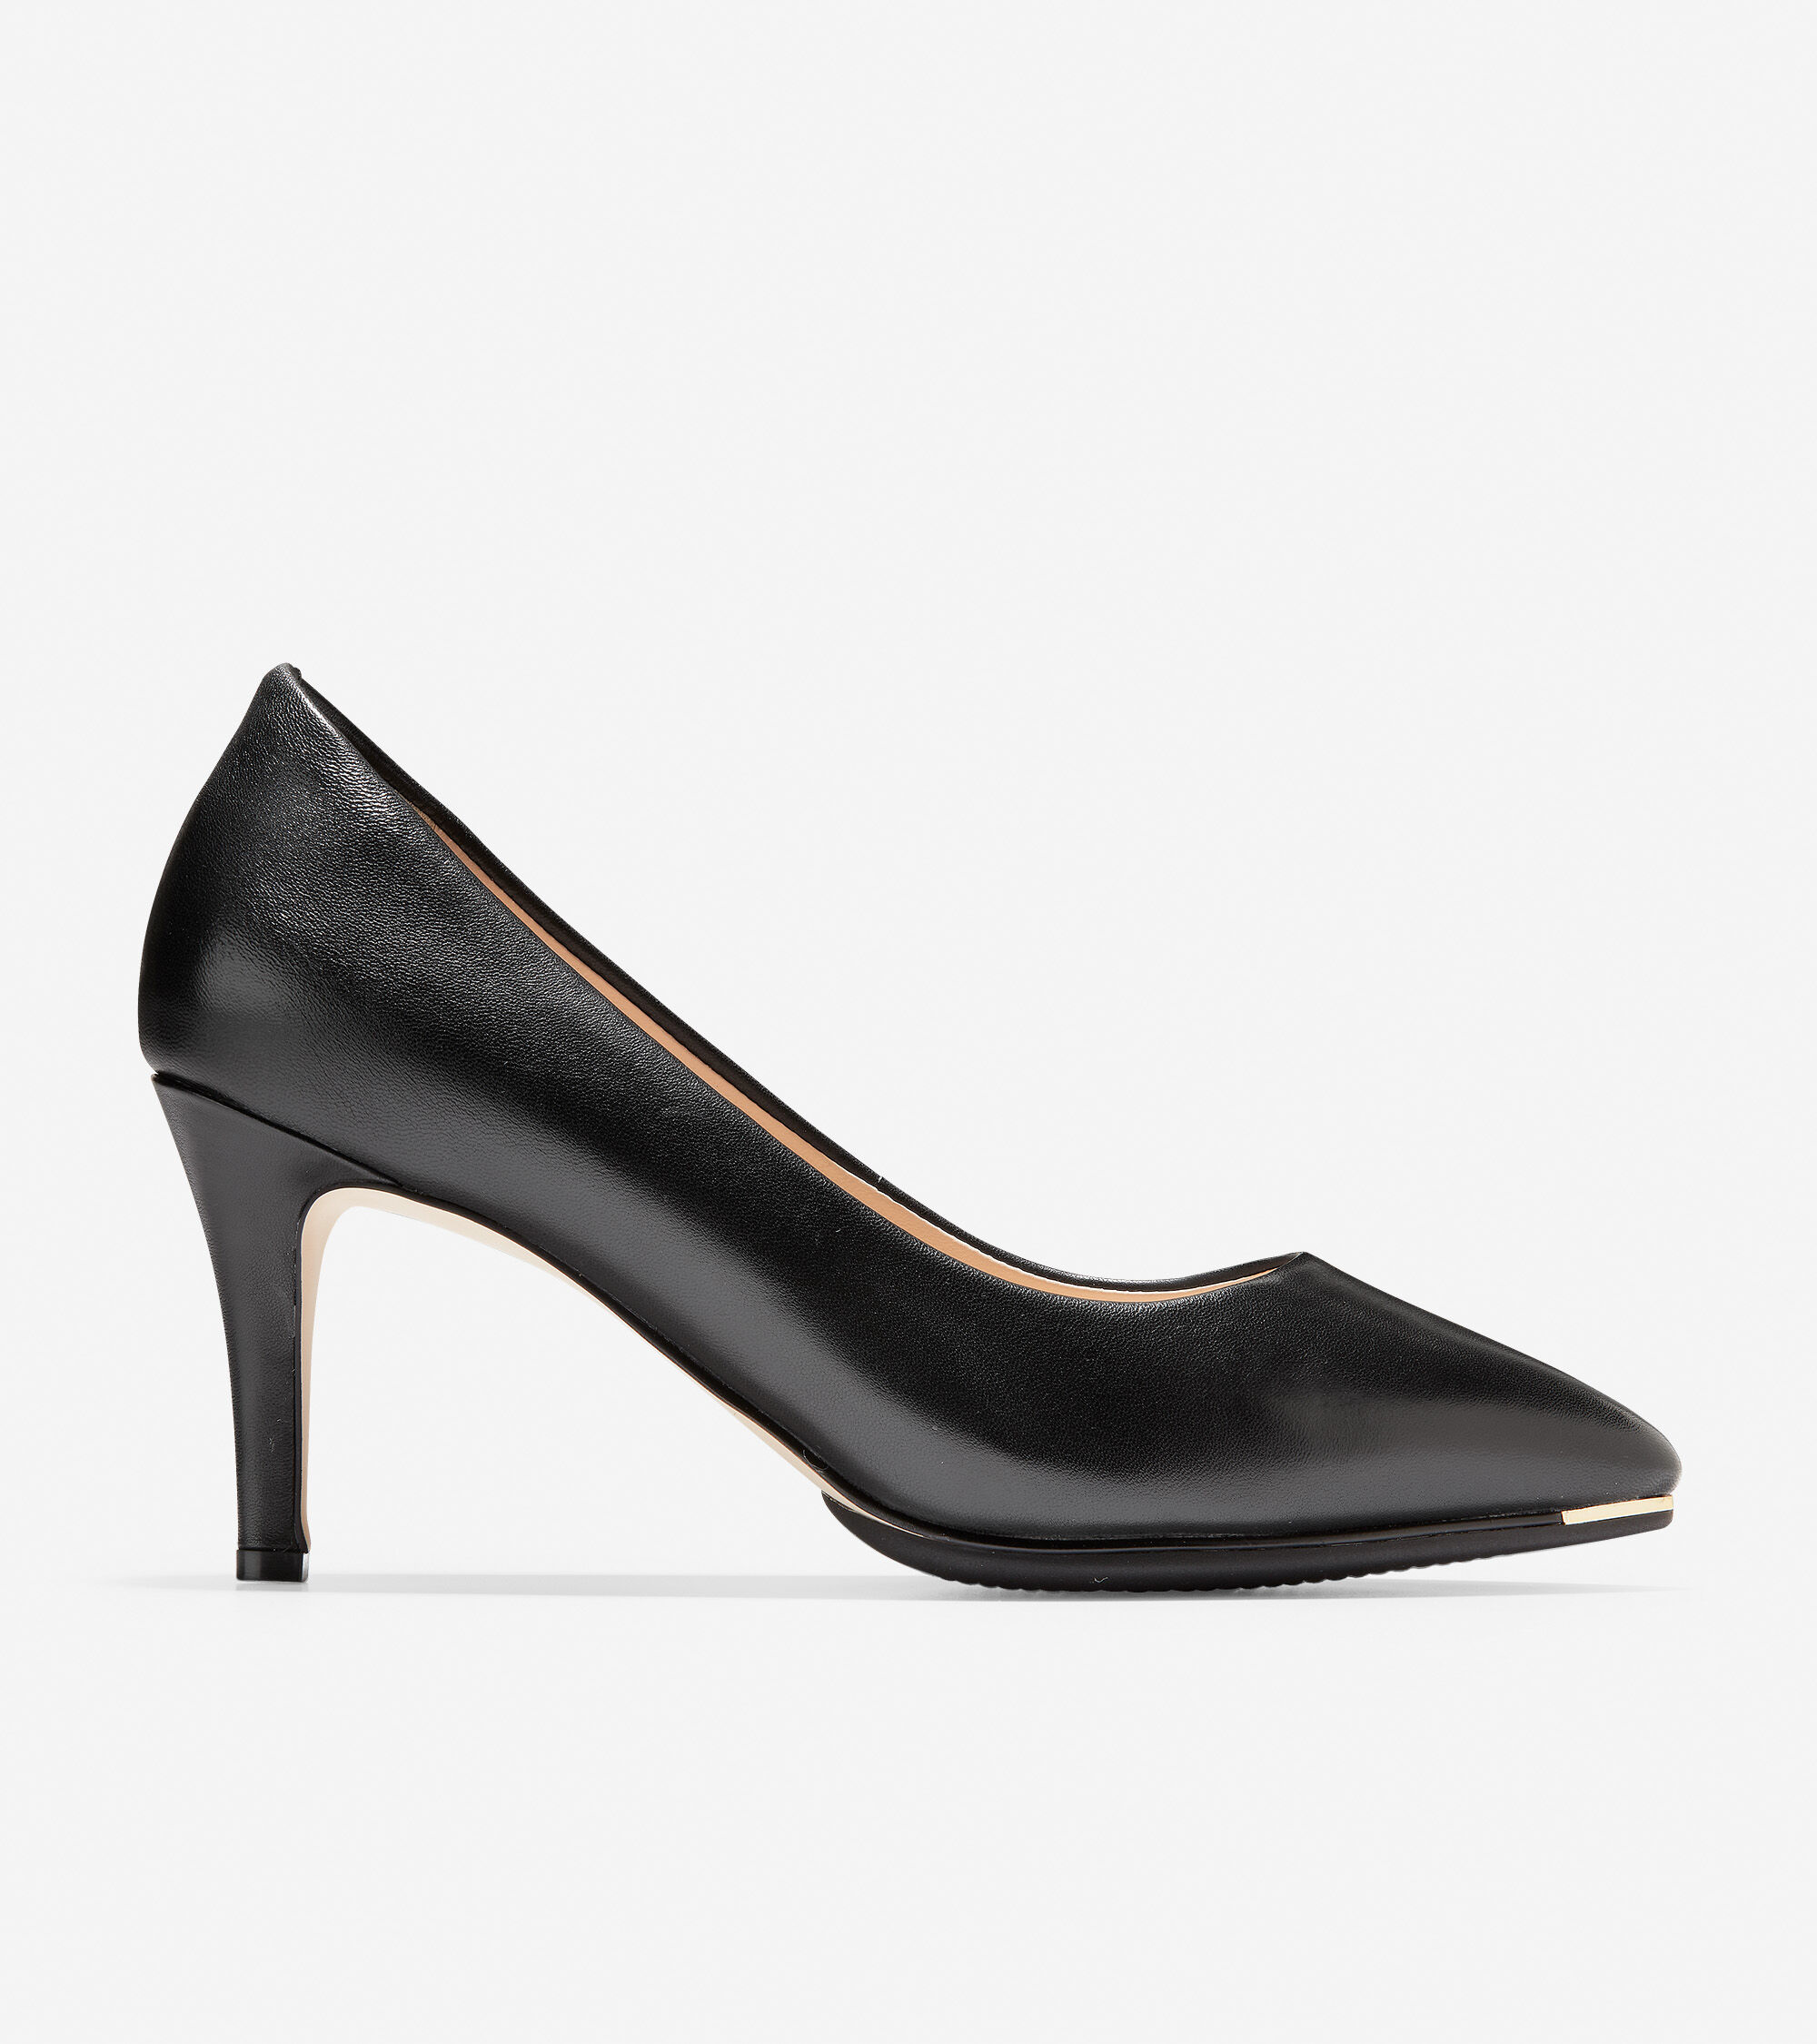 Cole Haan Women's Grand Ambition Leather Pumps In Black